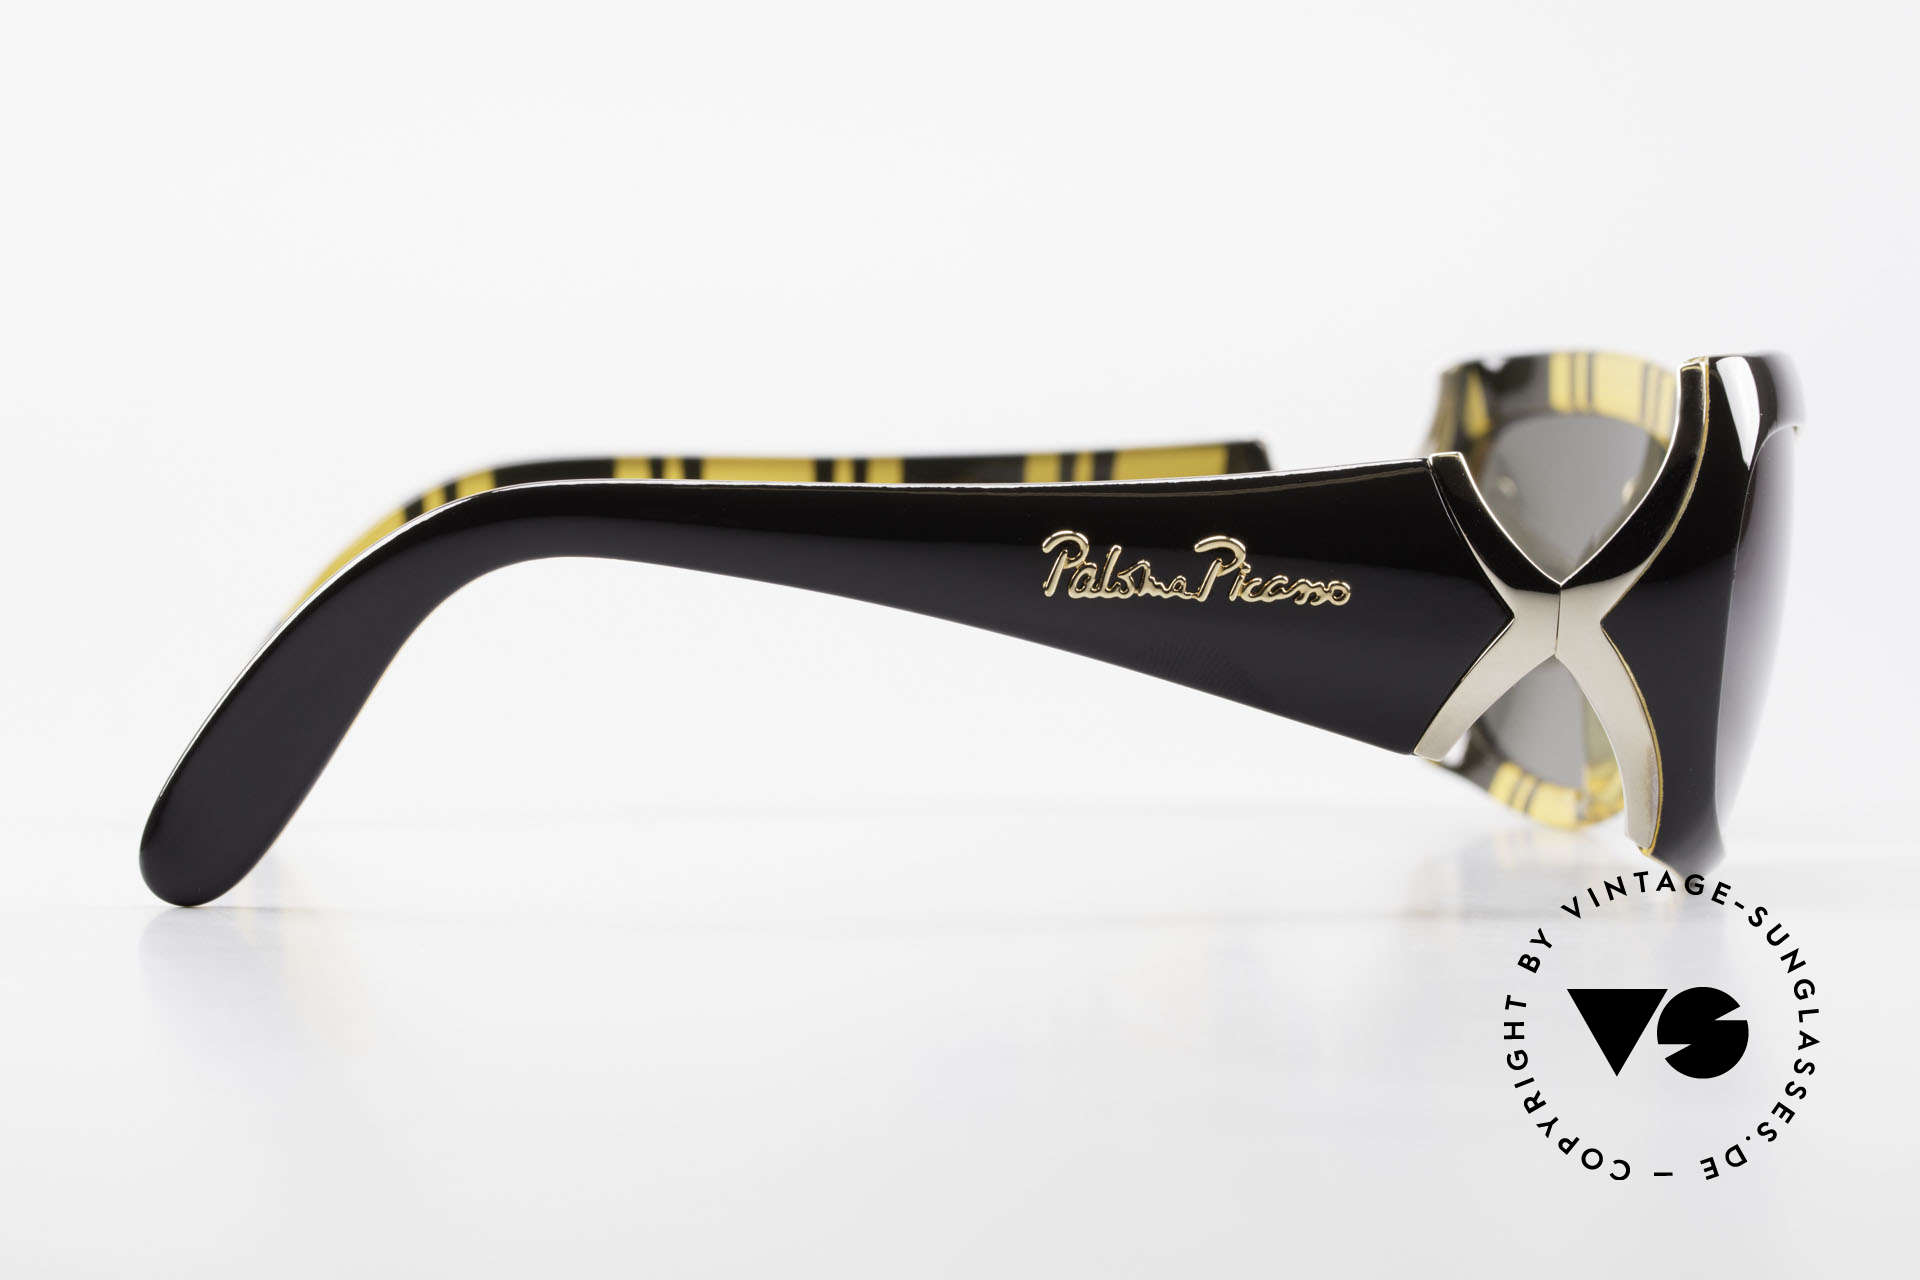 Paloma Picasso 3700 90's Ladies Designer Shades, of course, never worn (as all our old 90's treasures), Made for Women